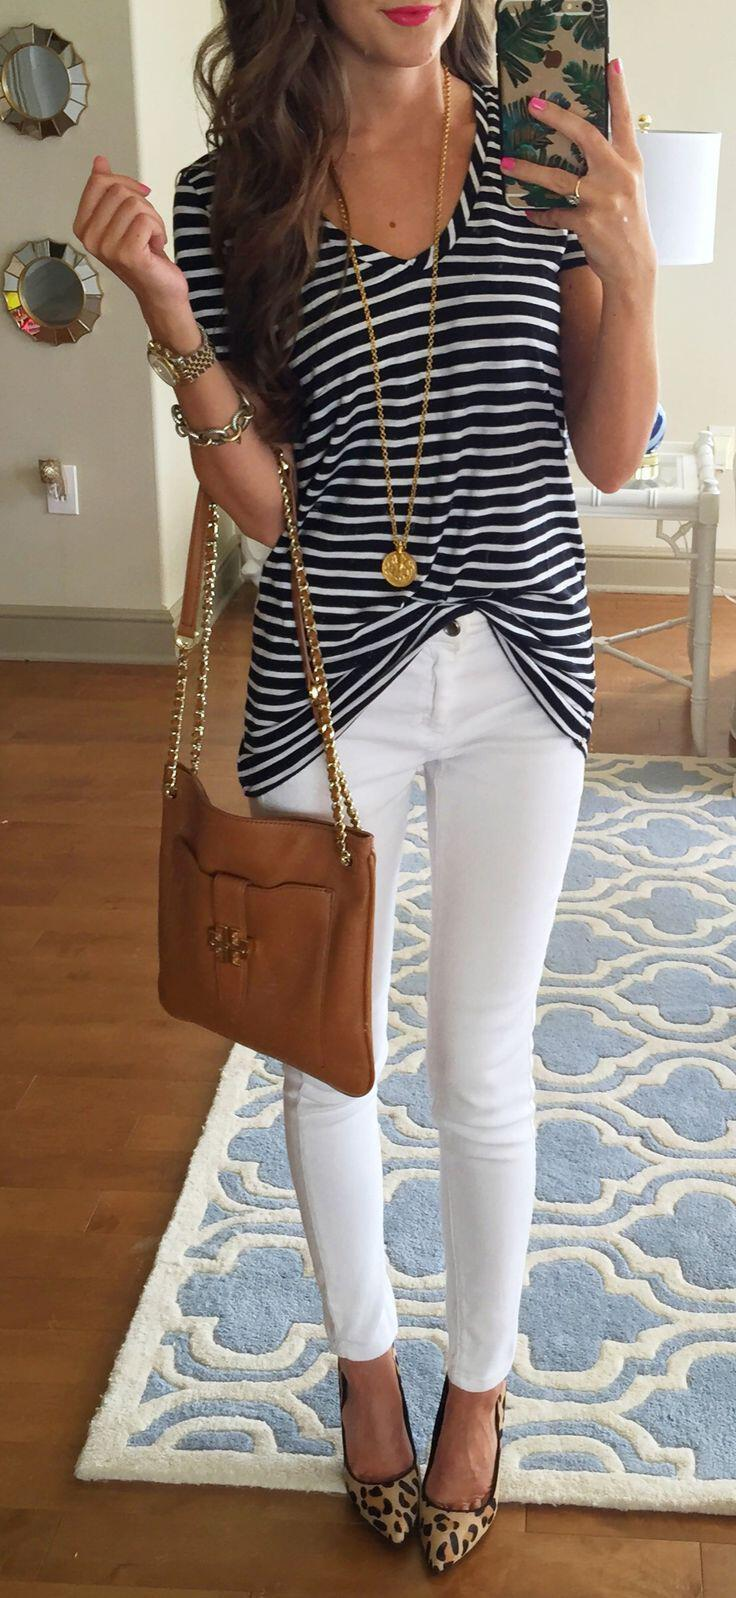 14 stylish spring outfits with white jeans 5 - 14 stylish spring outfits with white jeans